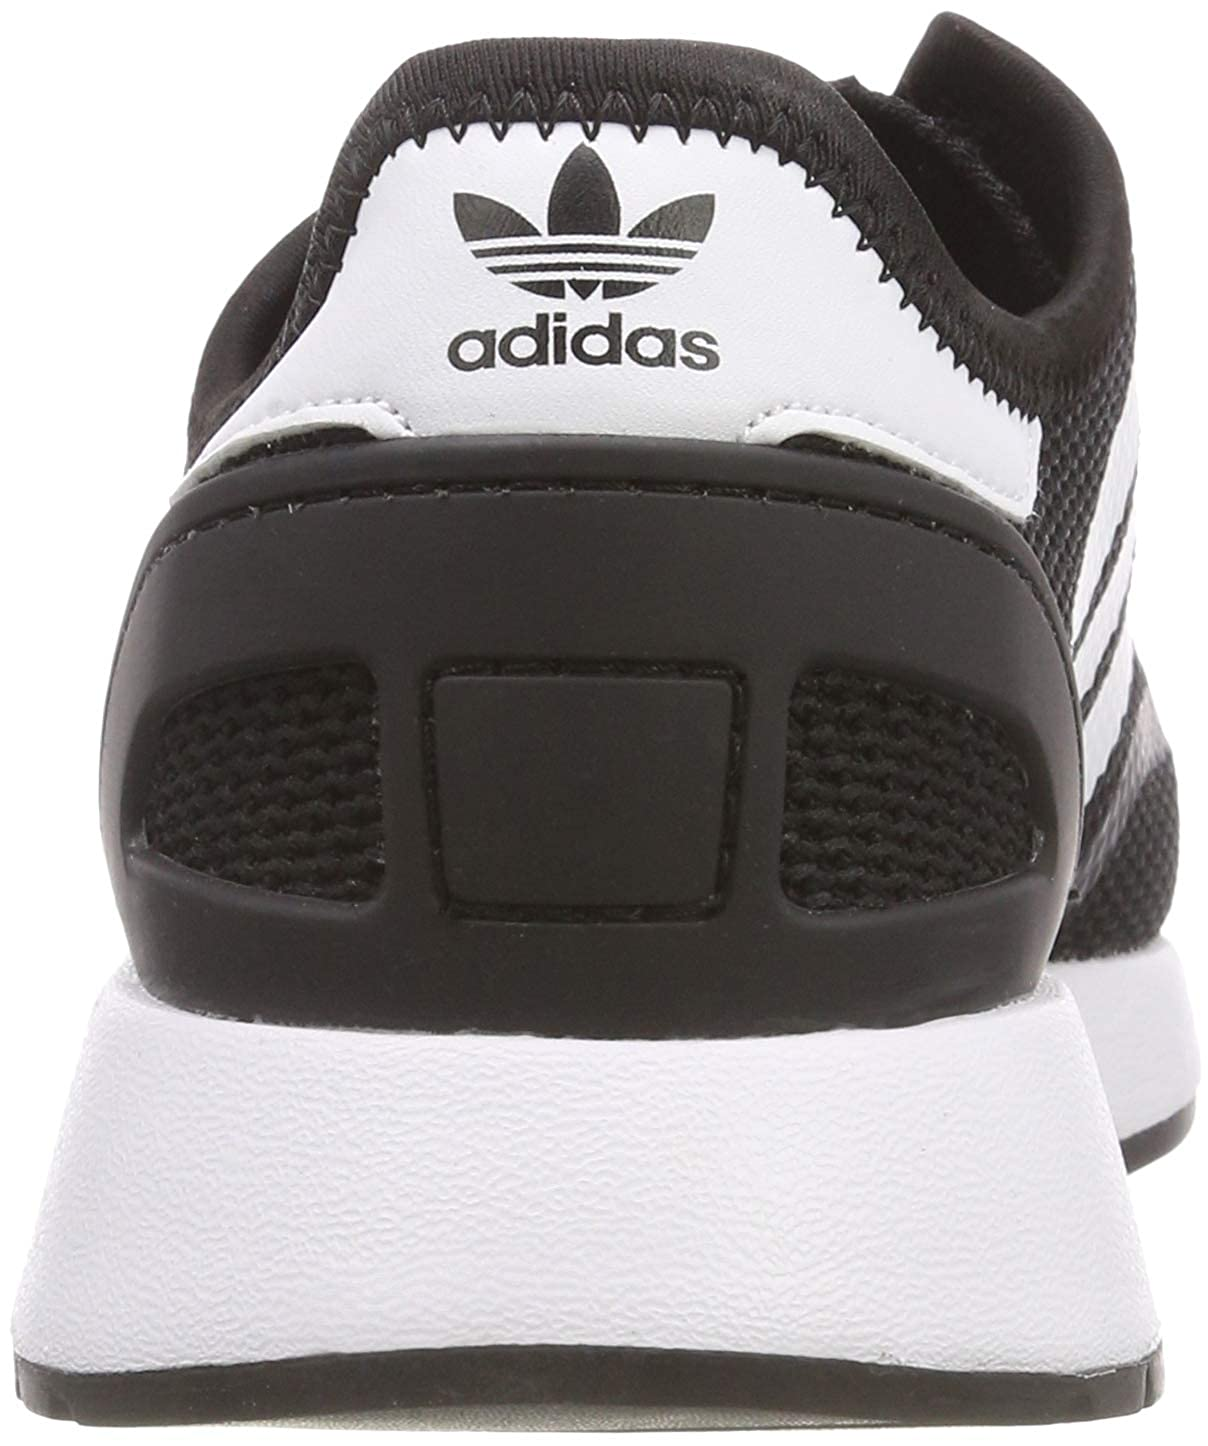 save off b0ff1 a83dd adidas N-5923 J, Scarpe da Fitness Unisex - Bambini  MainApps  Amazon.it   Scarpe e borse